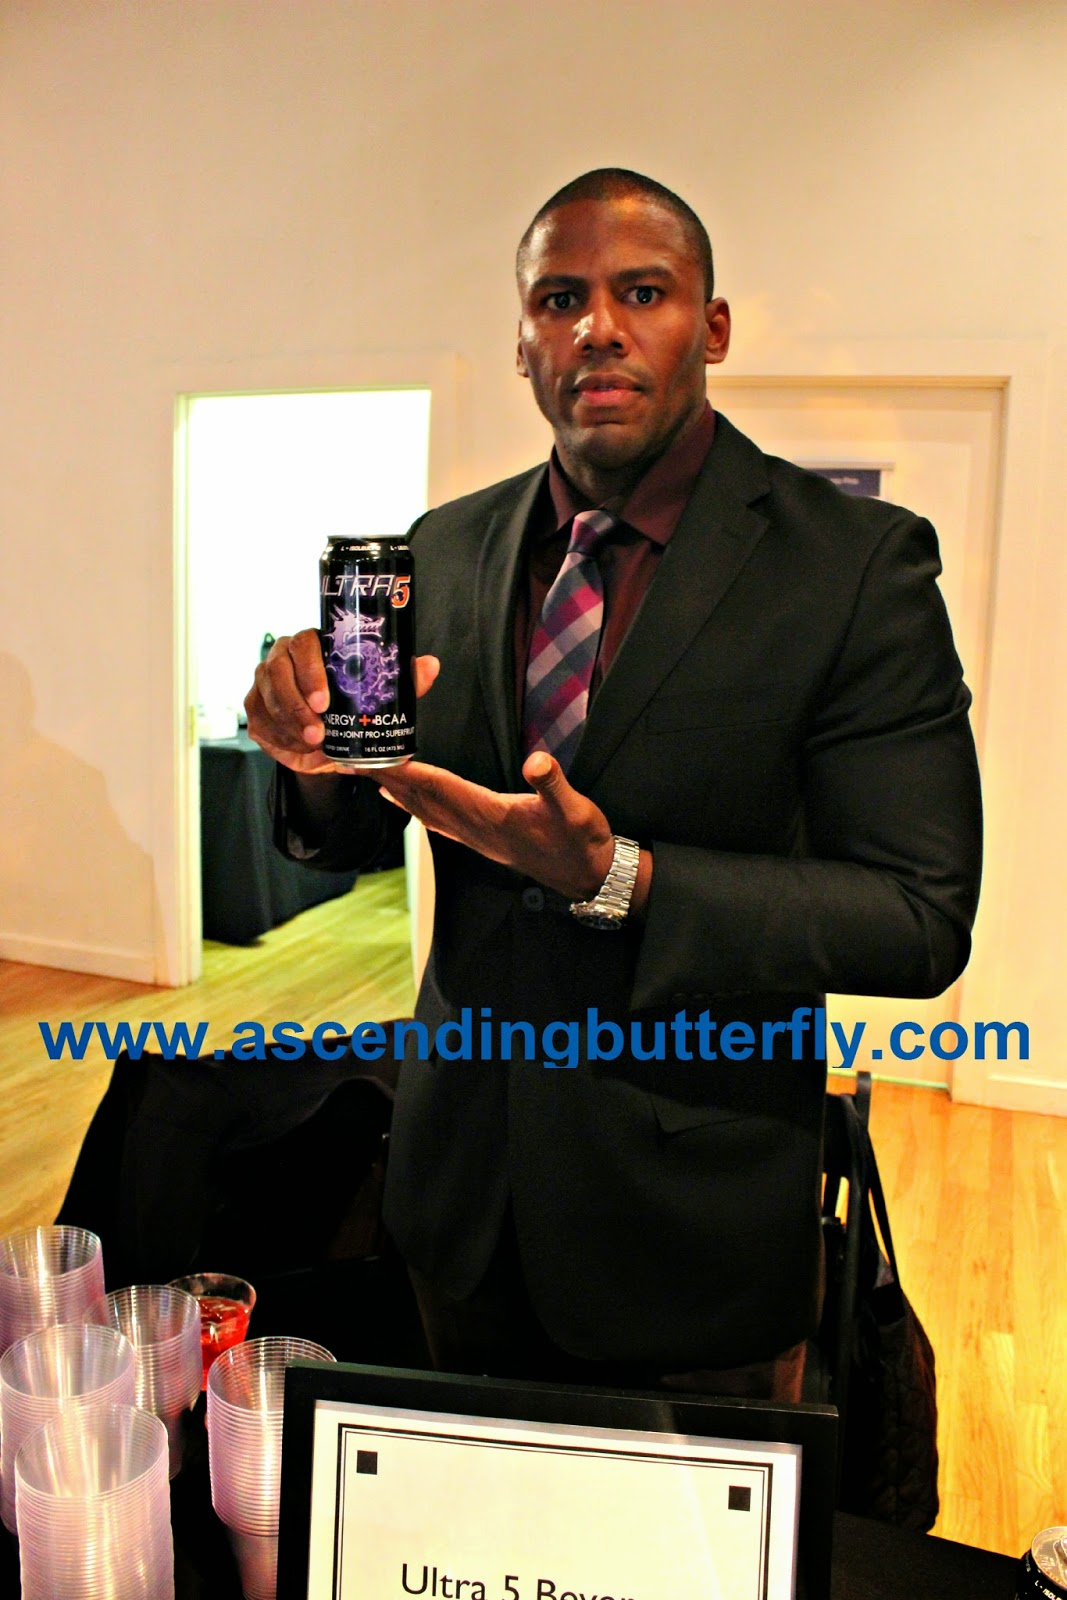 Ultra 5 Beverage The Luxury Review Fall 2014, Energy Drink